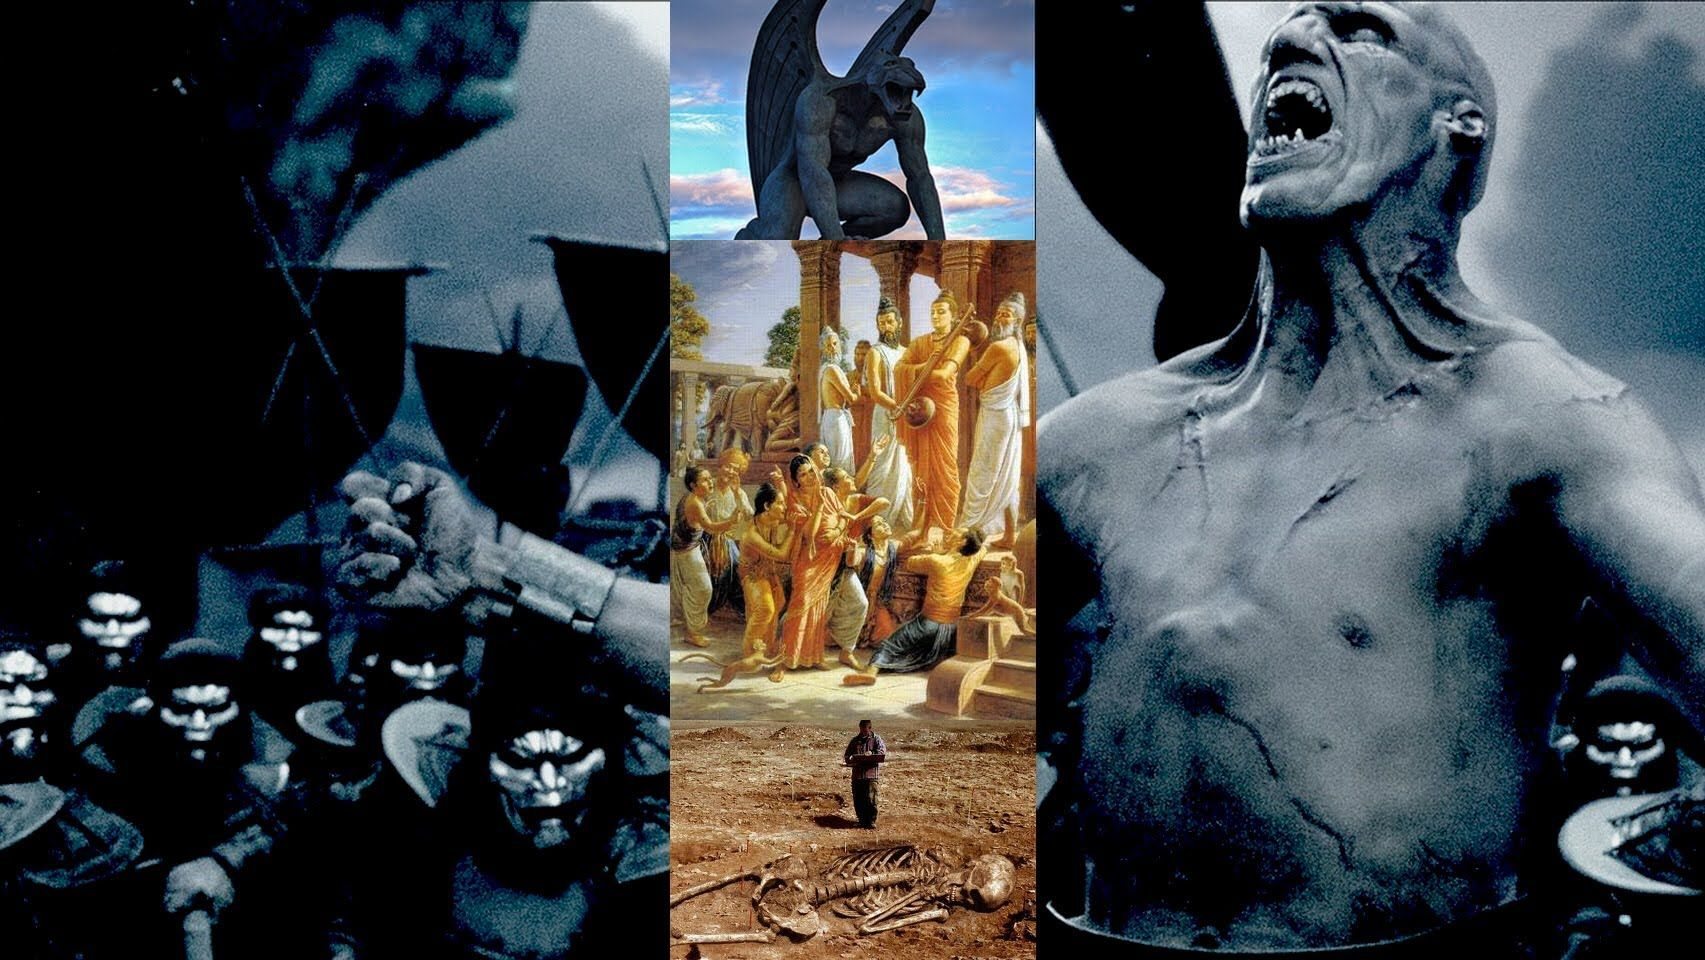 Rise of the Nephilim: Giants from the Ancient World in the Days of Noah |  Bible prophecy, Nephilim, Bible